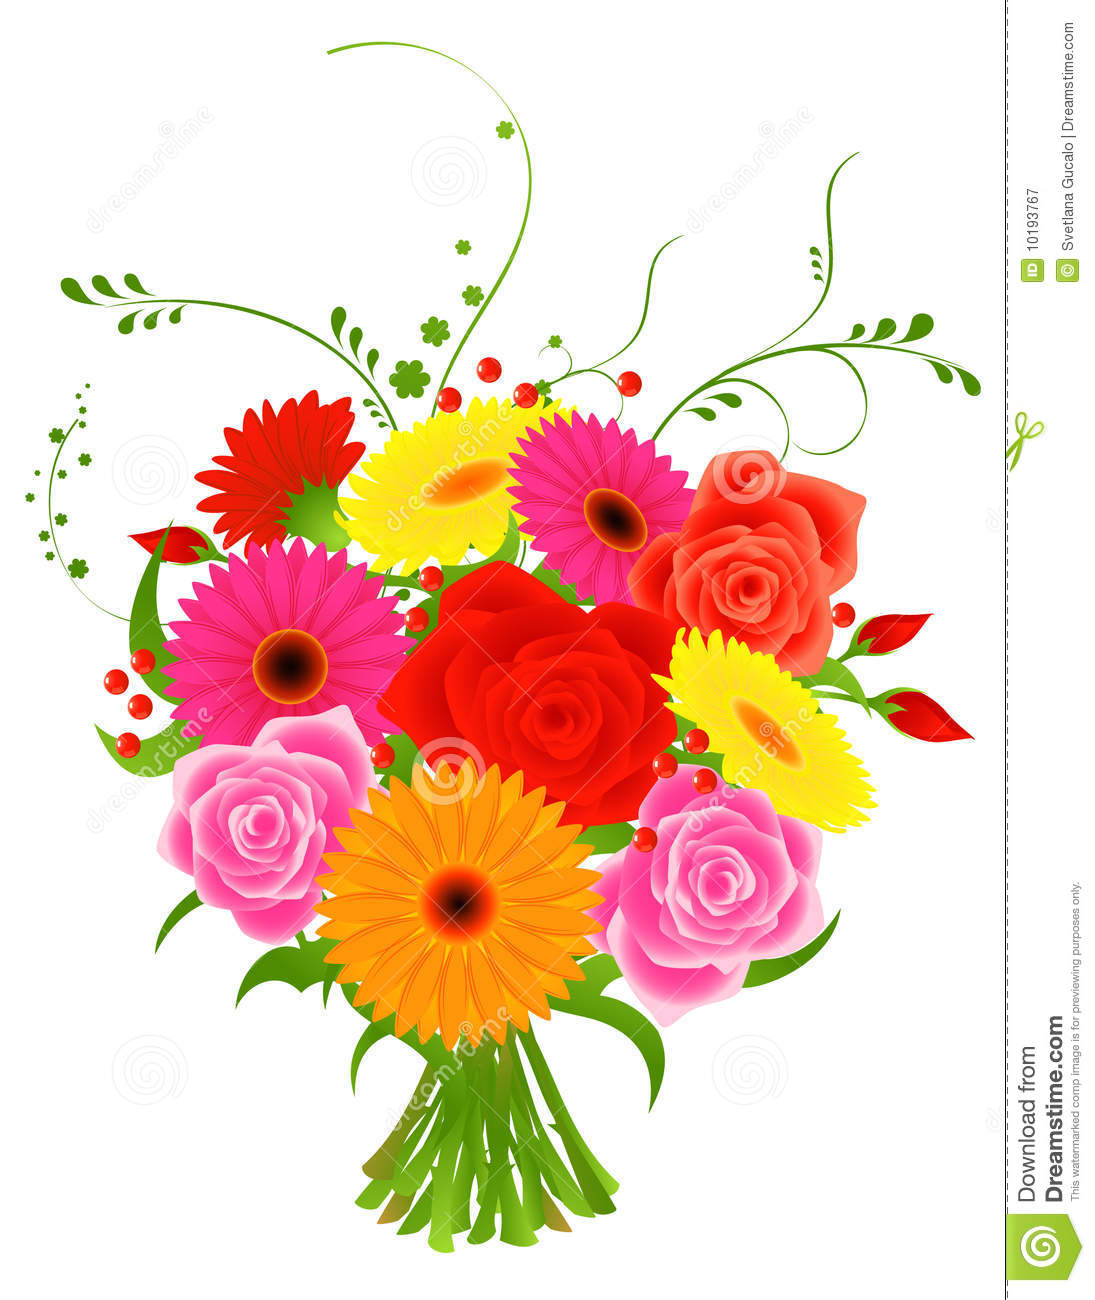 Bunch flowers images free clipart black and white download Bunch Of Flowers Royalty Free Stock Photography - Image: 10193767 clipart black and white download